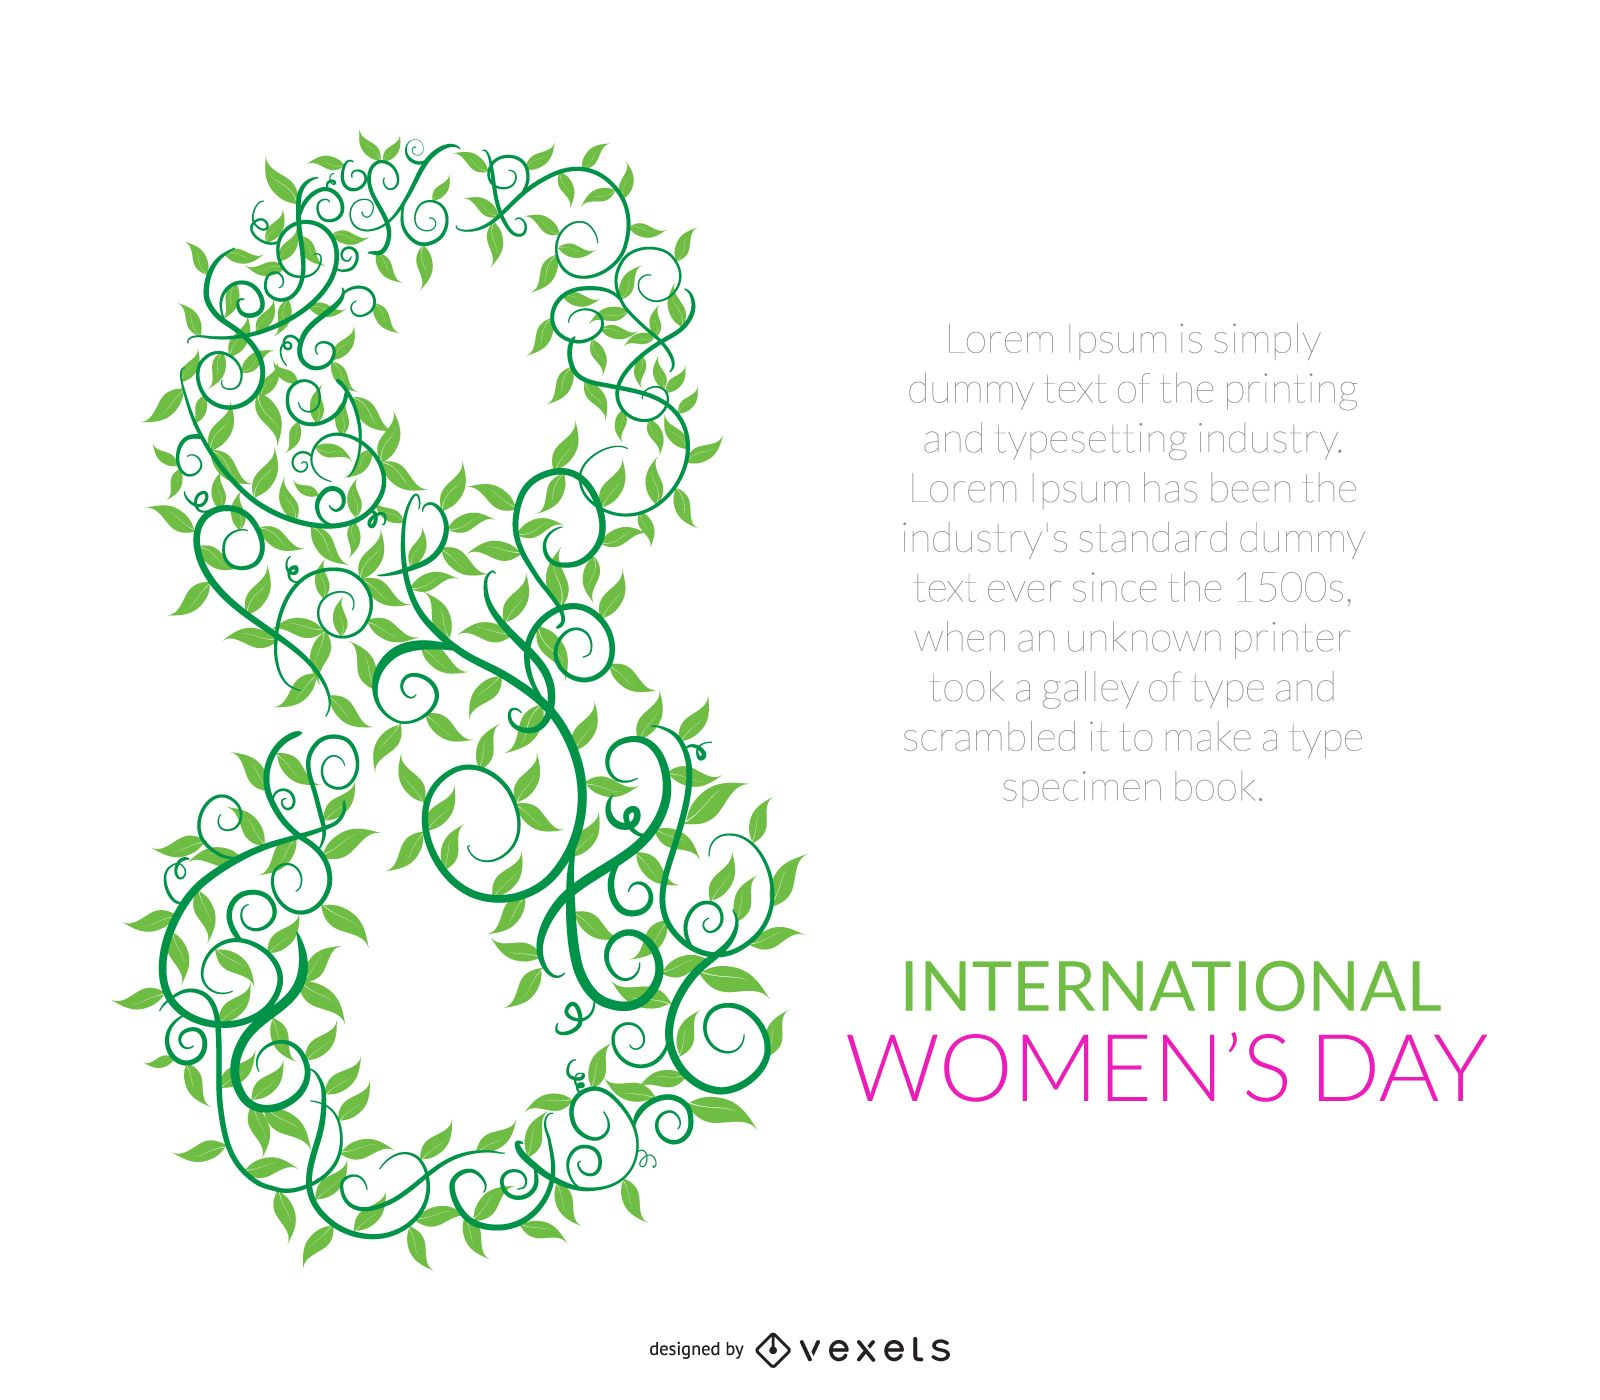 Women's Day nature poster